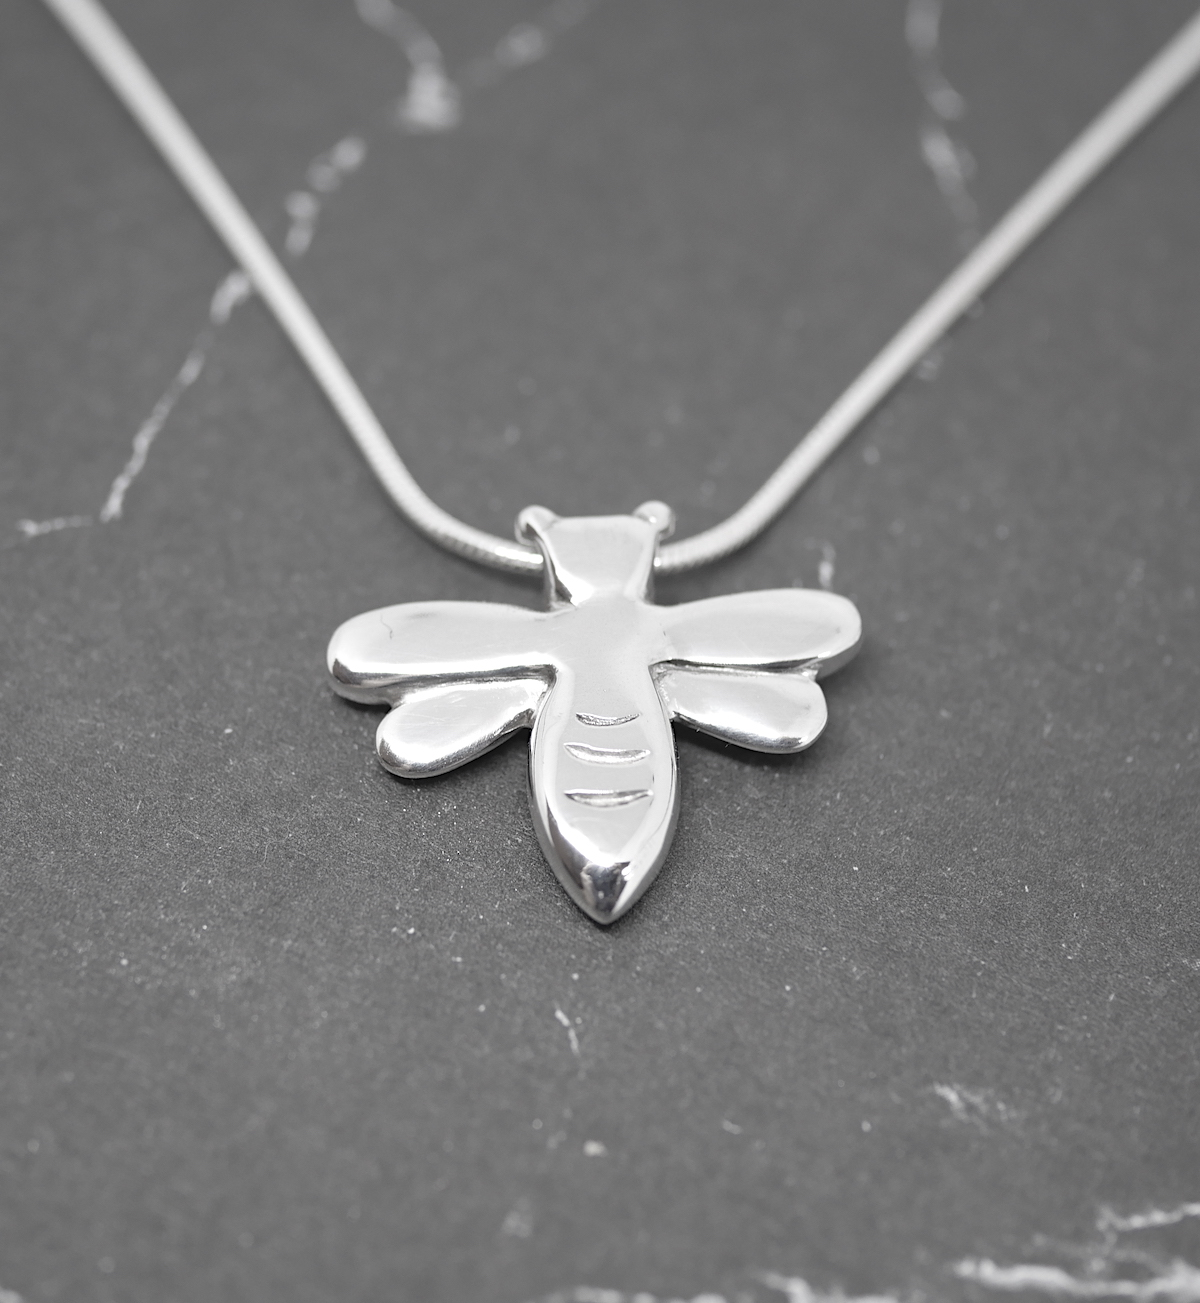 Honeybee – Handmade Solid Sterling Silver Bee Pendant With Snake Chain By Purplefish Designs